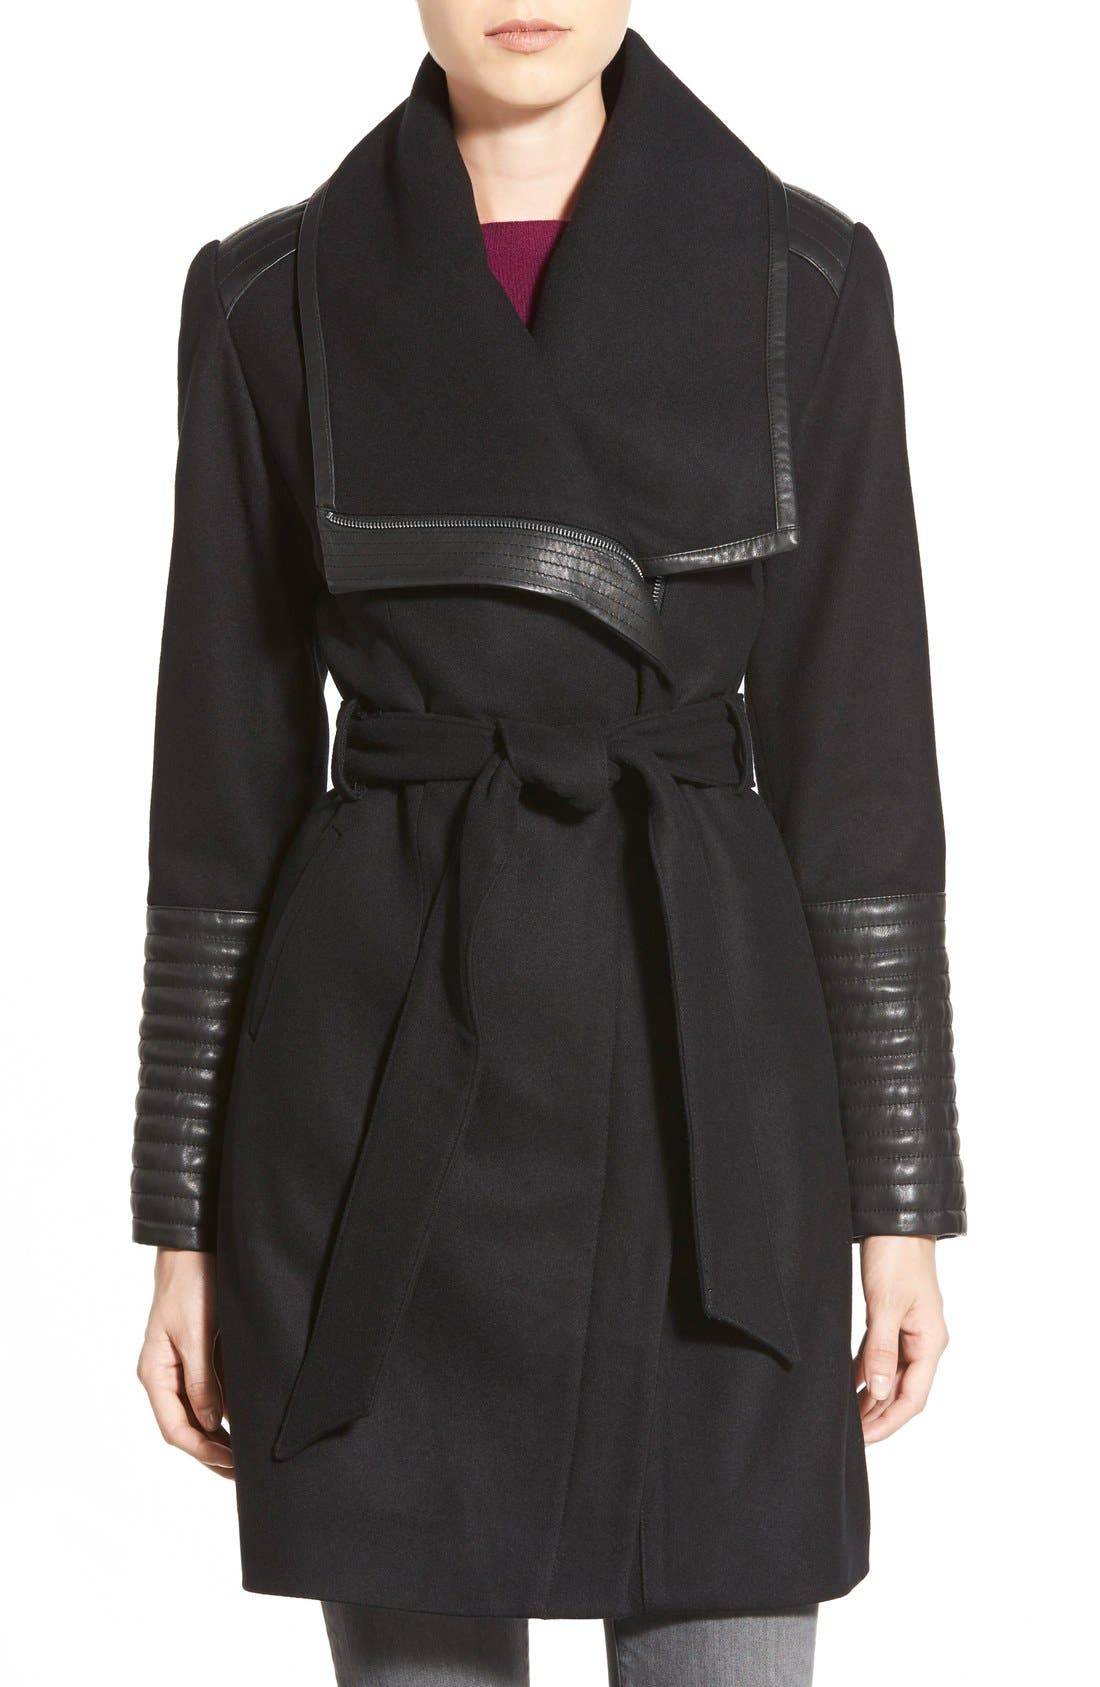 Main Image - Belle Badgley Mischka 'Lorian' Faux Leather Trim Belted Asymmetrical Wool Blend Coat